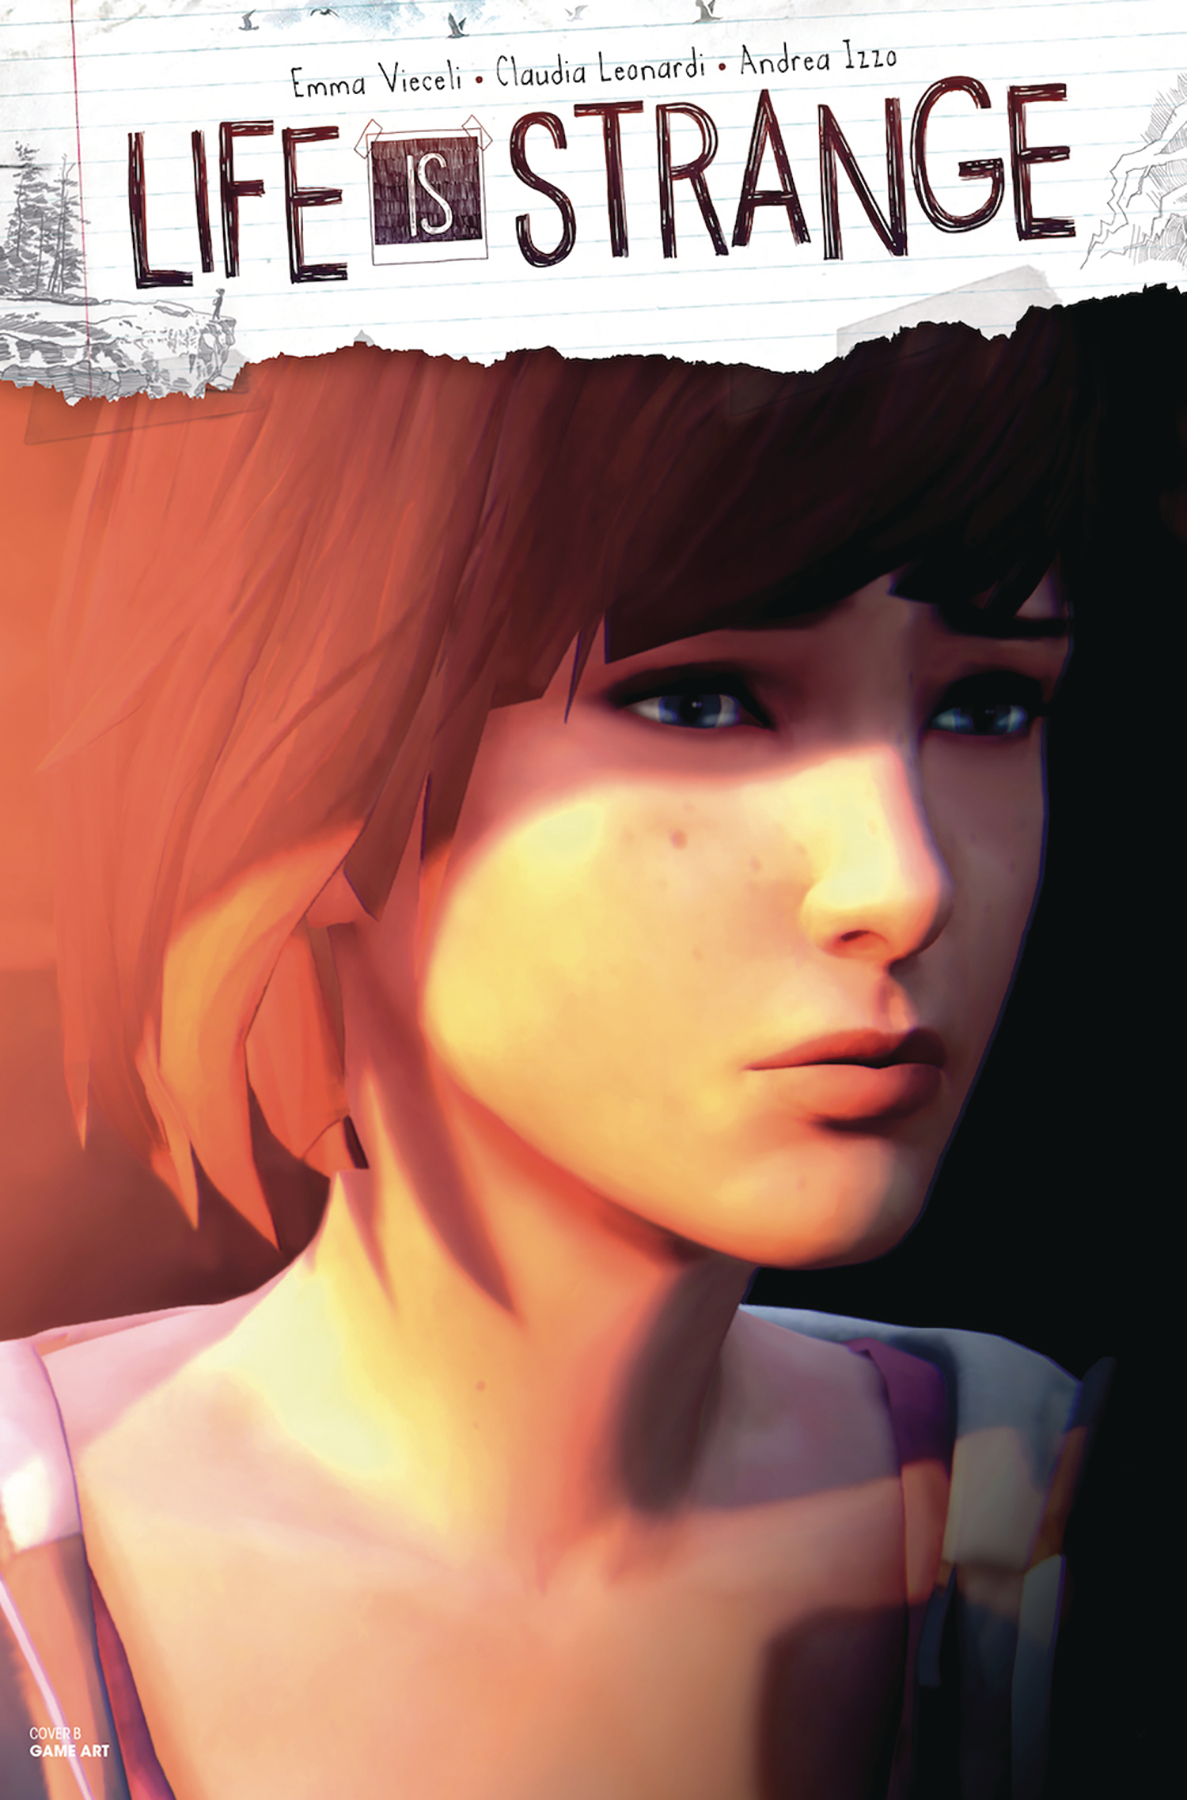 LIFE IS STRANGE #5 CVR B GAME ART (MR)